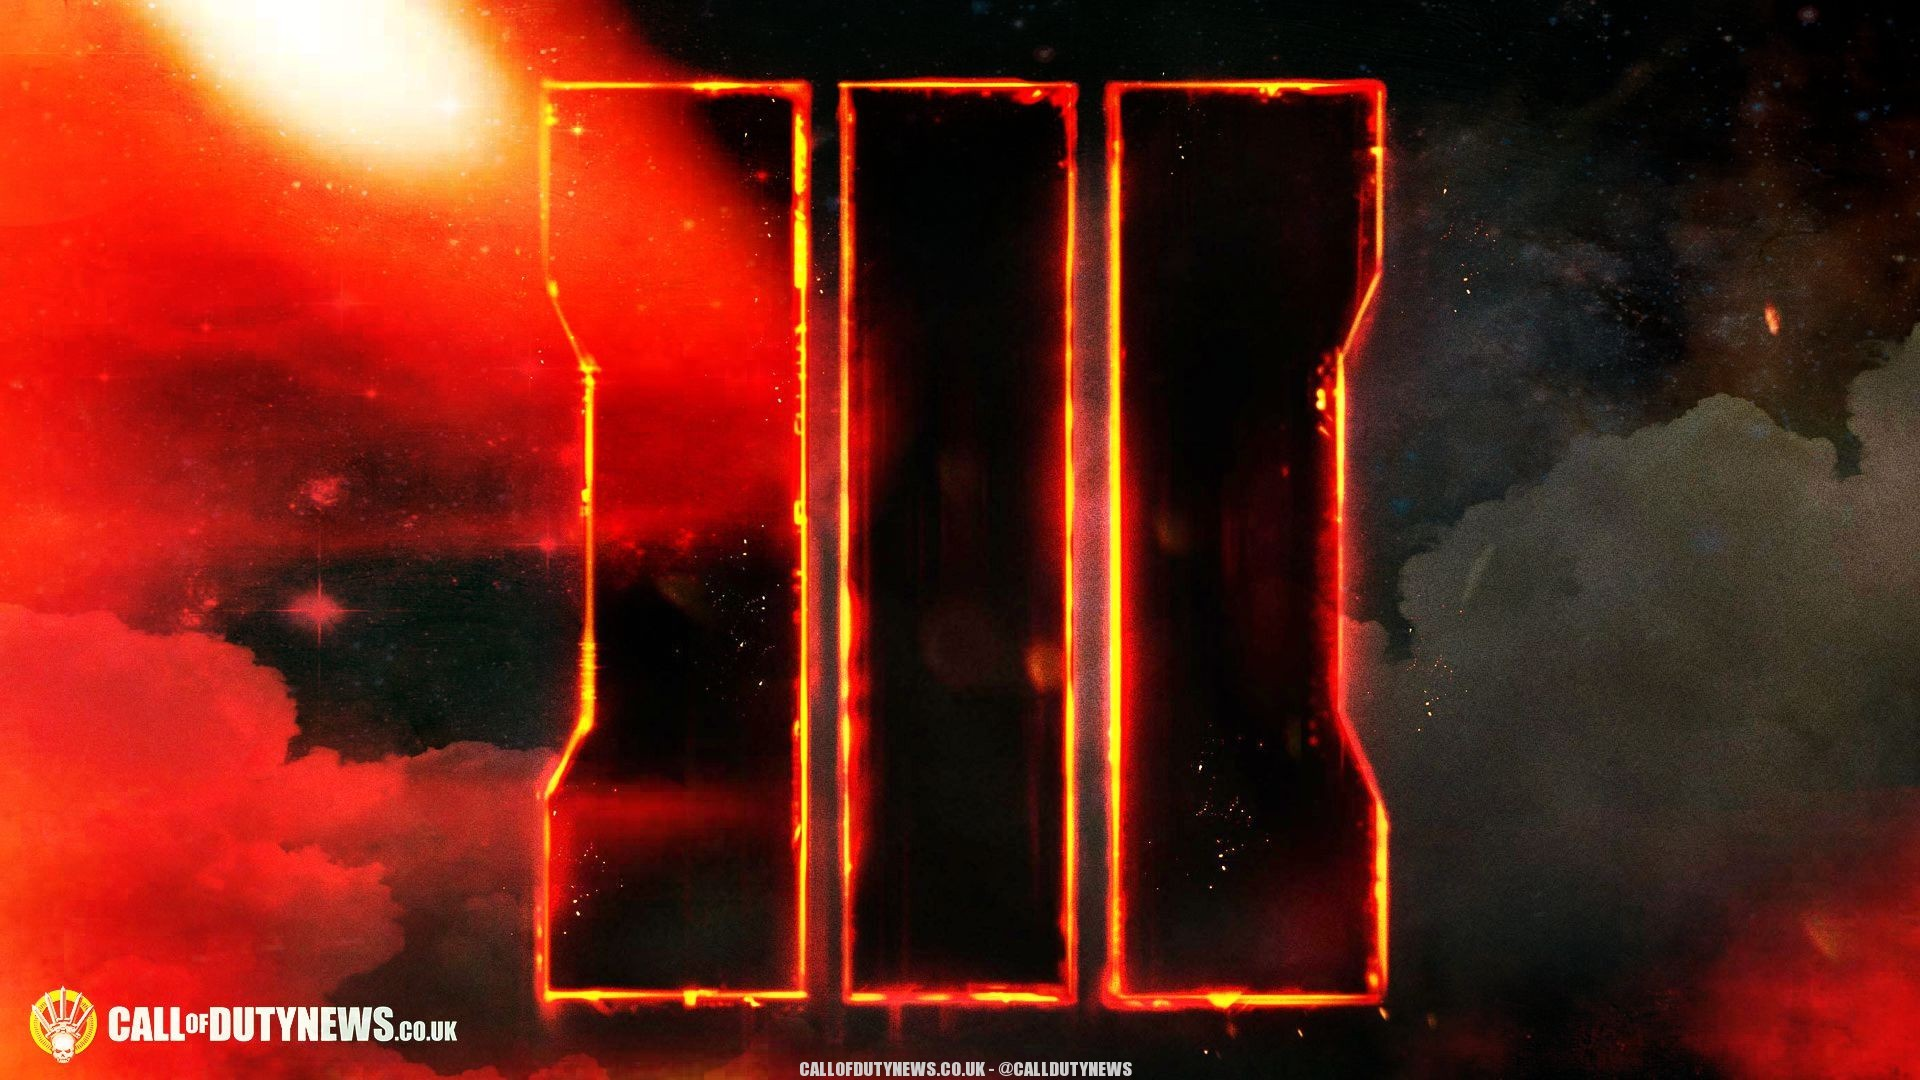 1920x1080 Call of Duty BO3 Wallpaper - WallpaperSafari